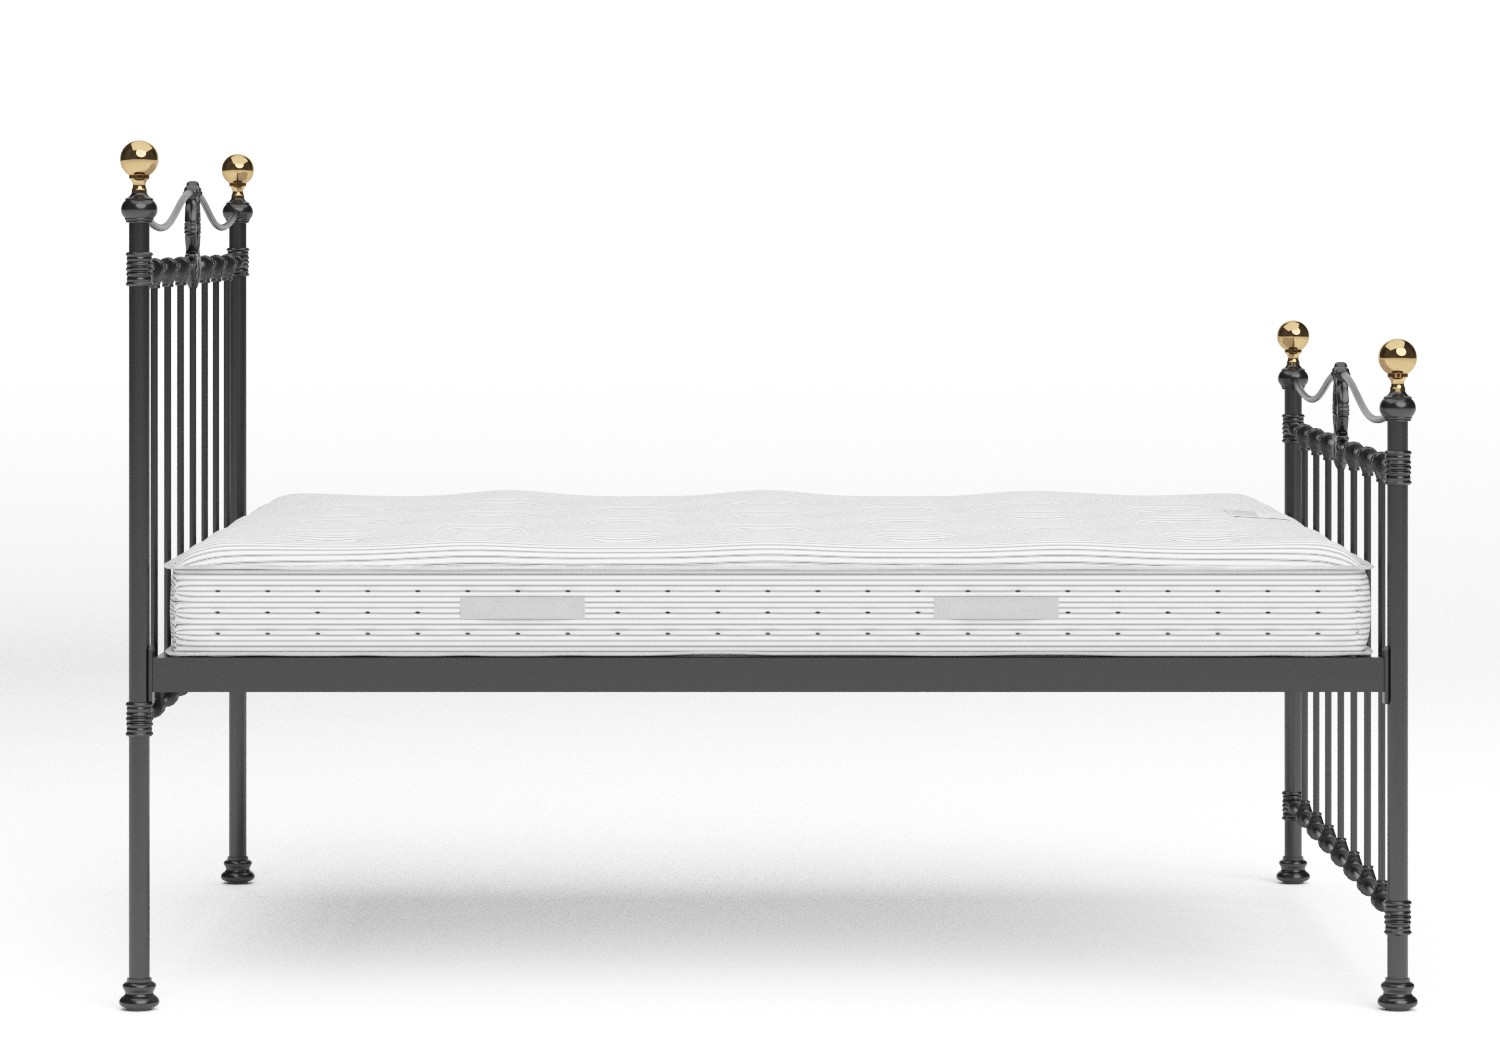 Tulsk Iron/Metal Bed in Satin Black with Brass details shown with Juno 1 mattress